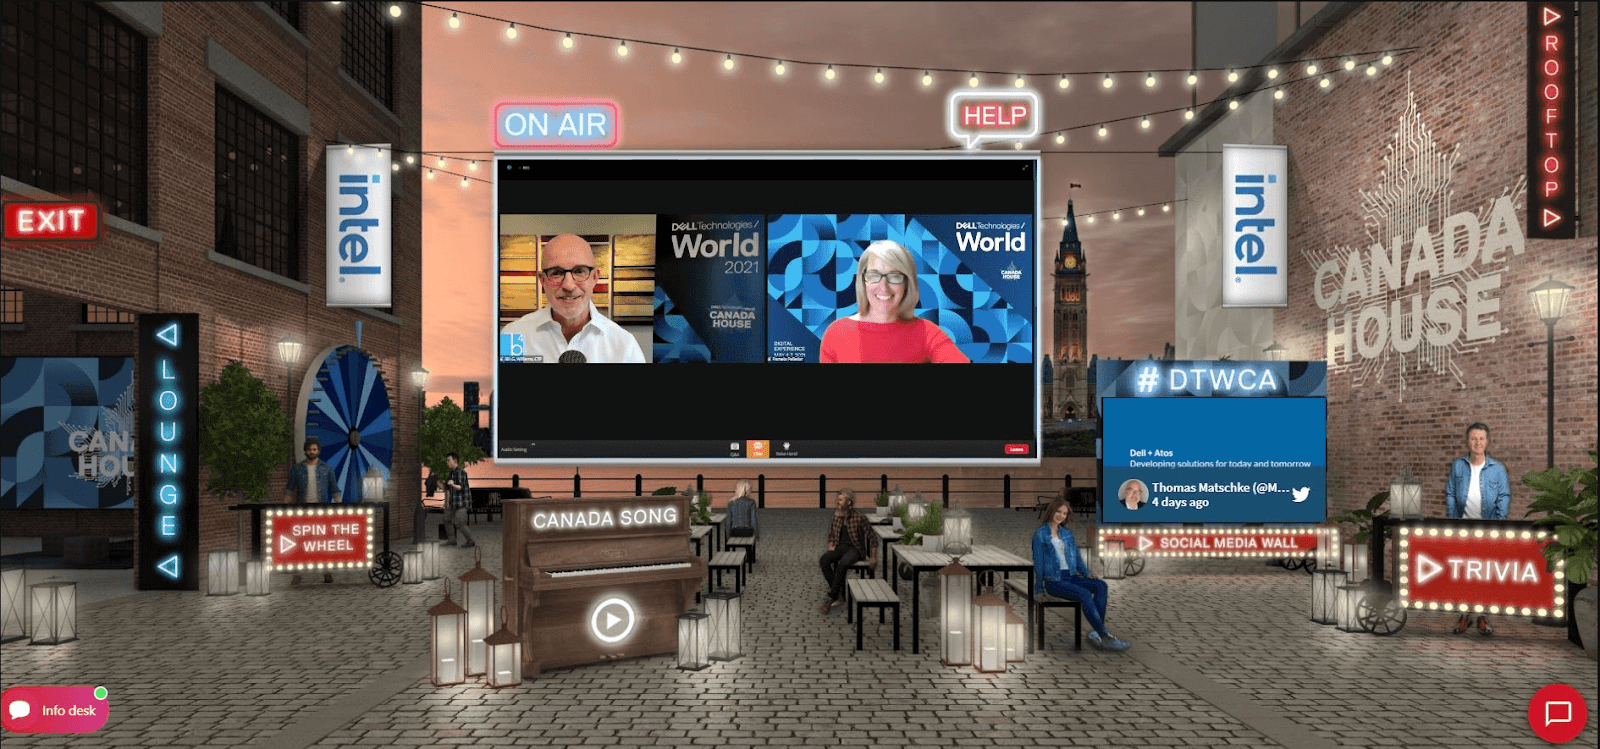 A screenshot of a virtual event venue with a live display in the center and a social wall display on the left.  A social wall shows a tweet with an event hashtag.